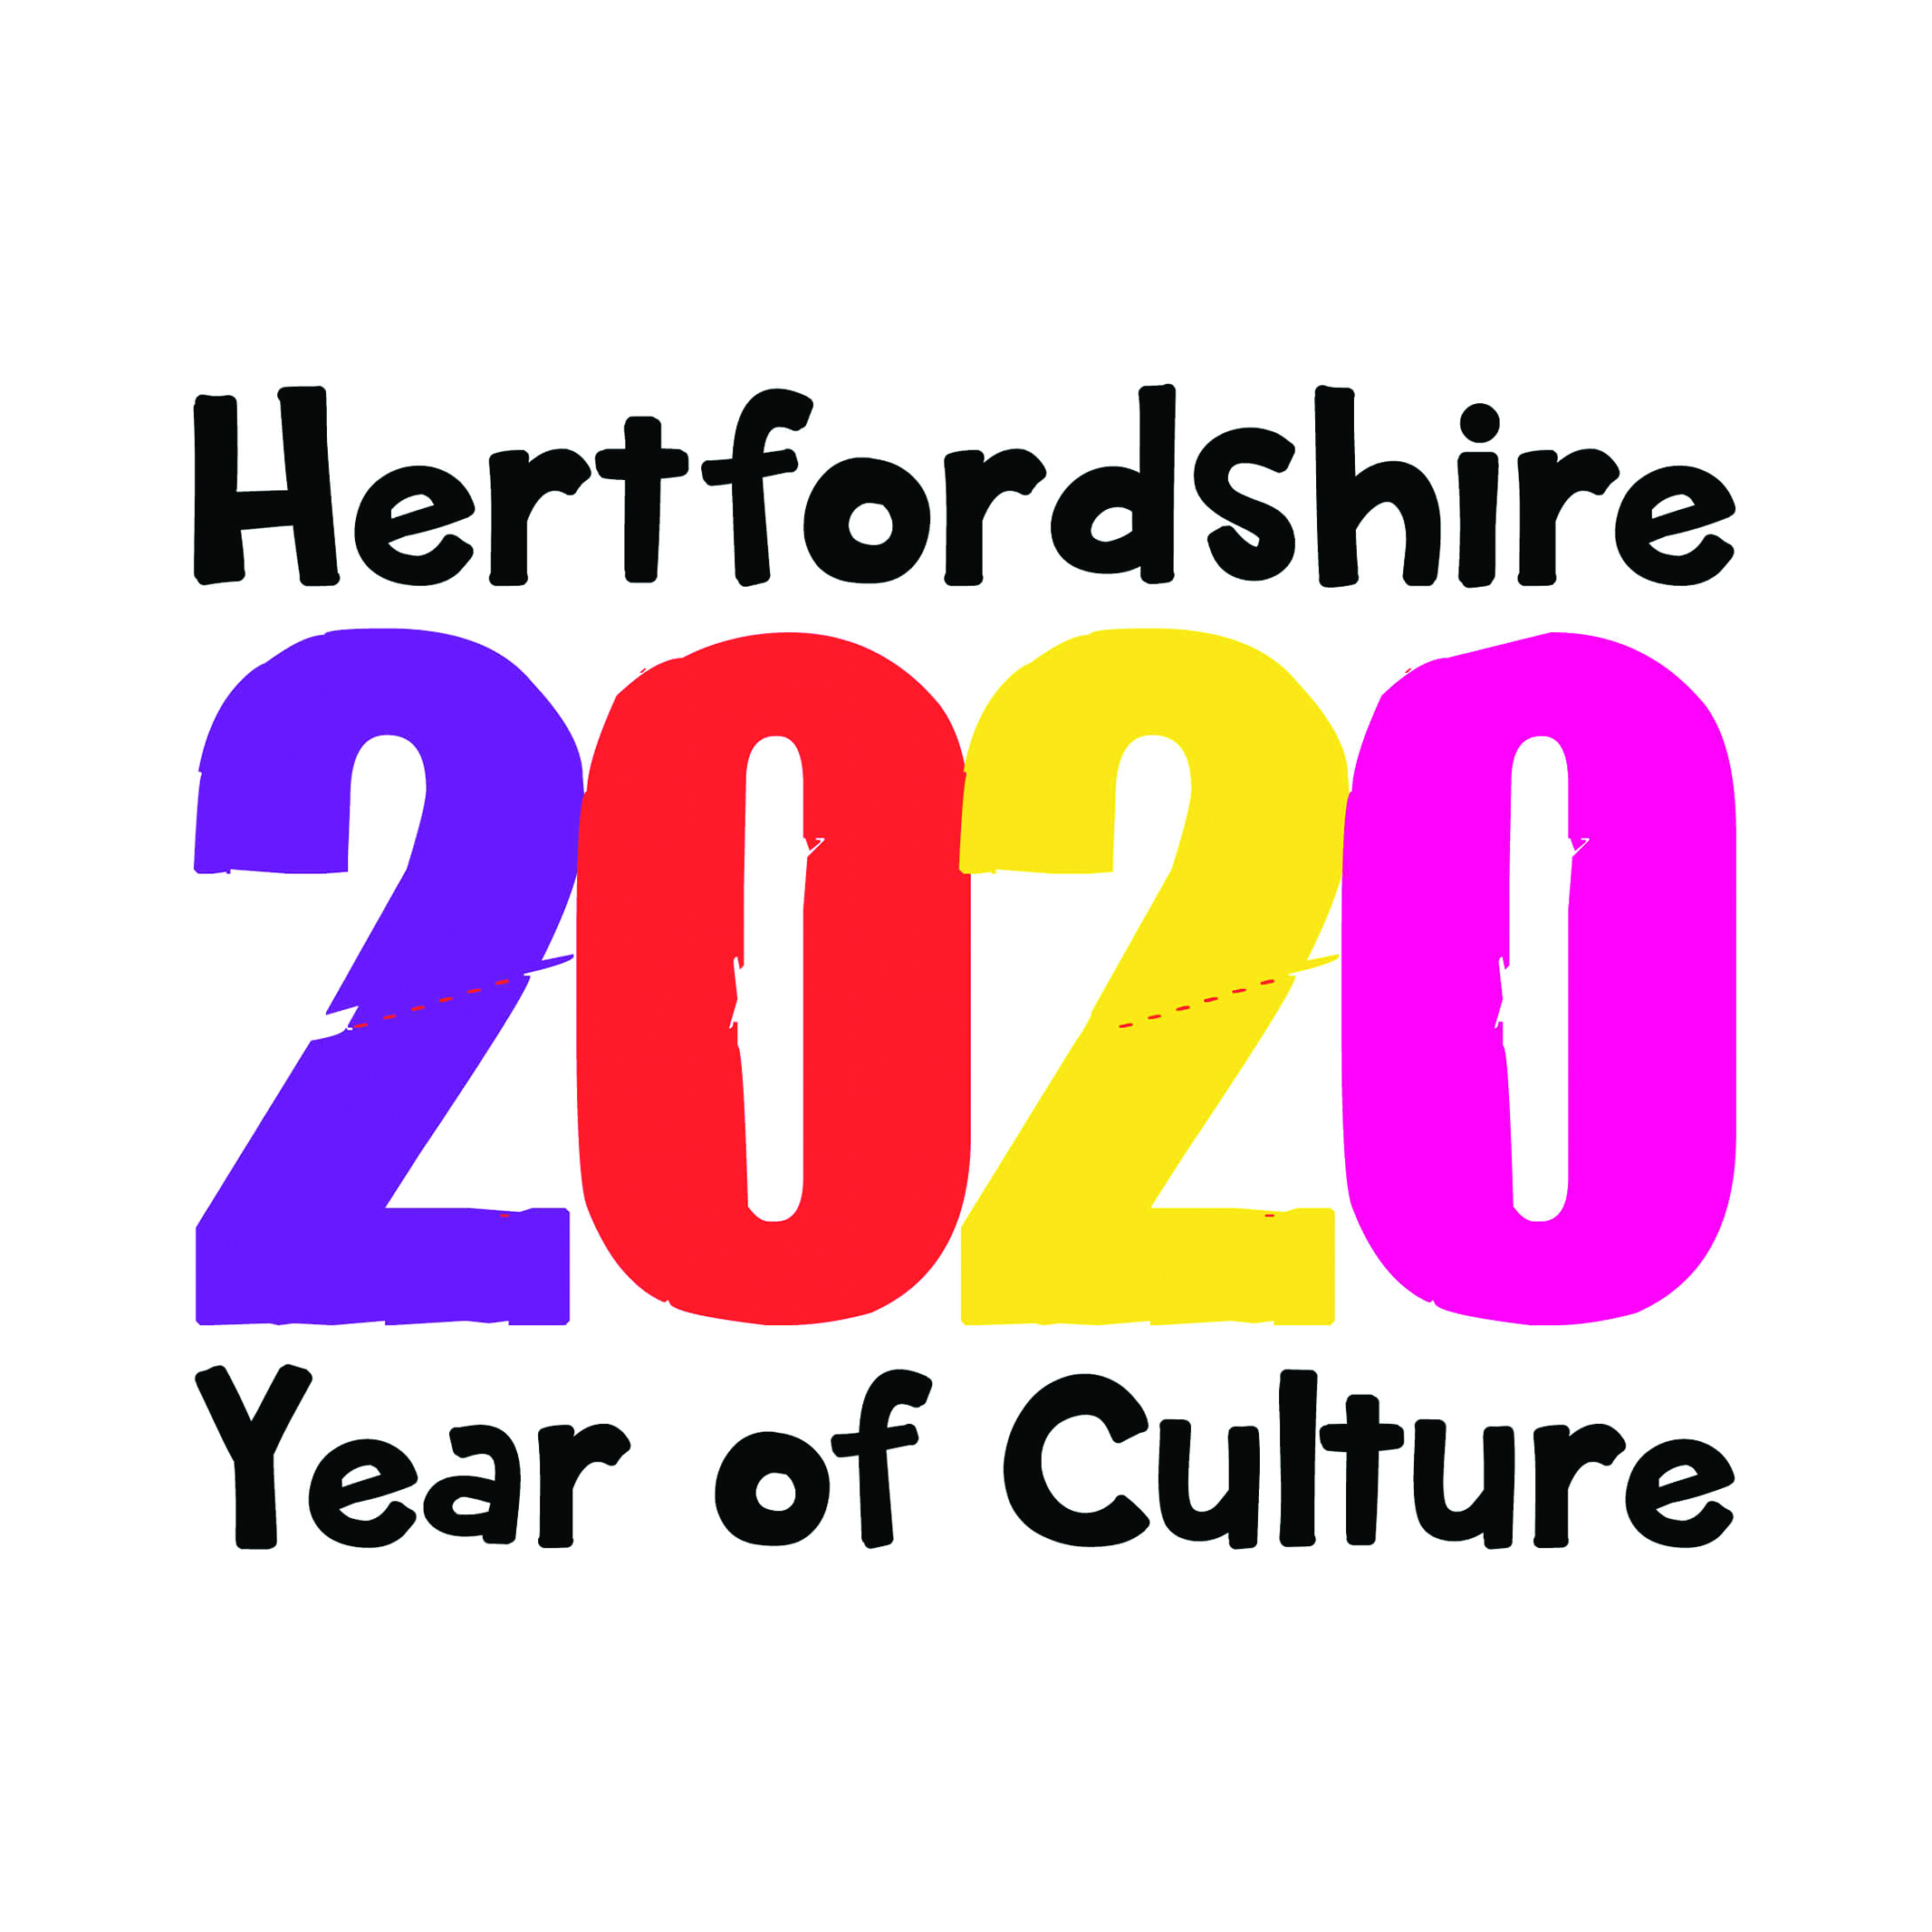 Hertfordshire County Counci's Hertfordshire Year of Culture 2020